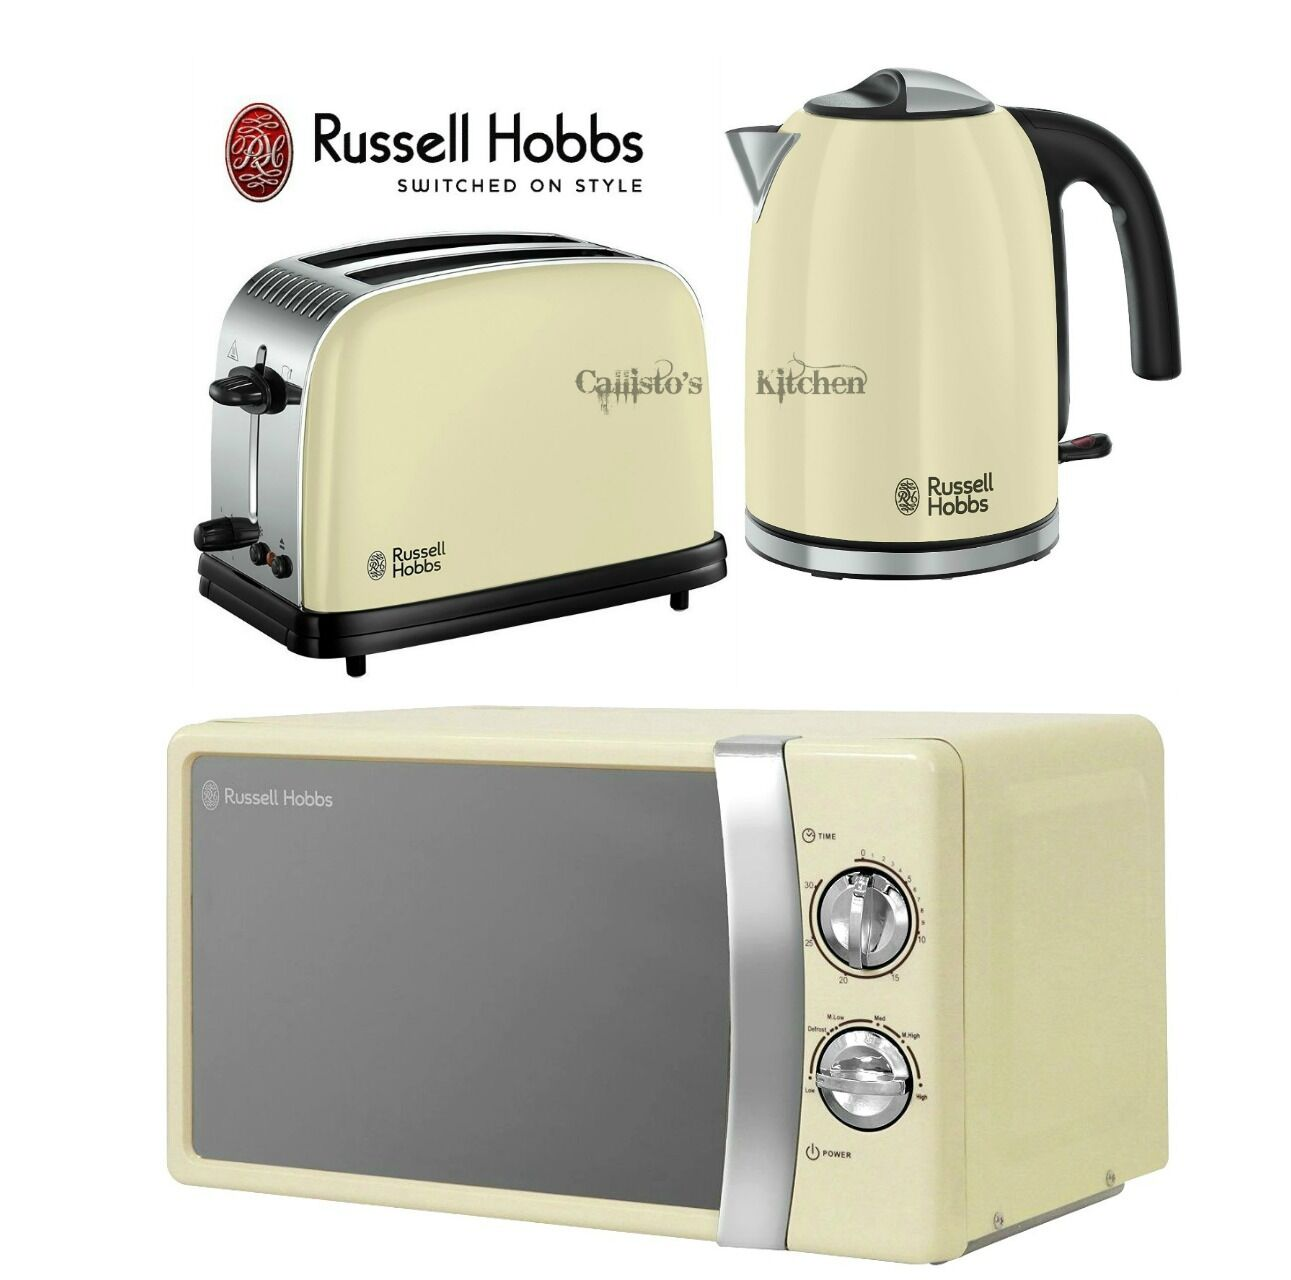 russell hobbs colours plus kettle and toaster set manual cream microwave new eur 137 03. Black Bedroom Furniture Sets. Home Design Ideas